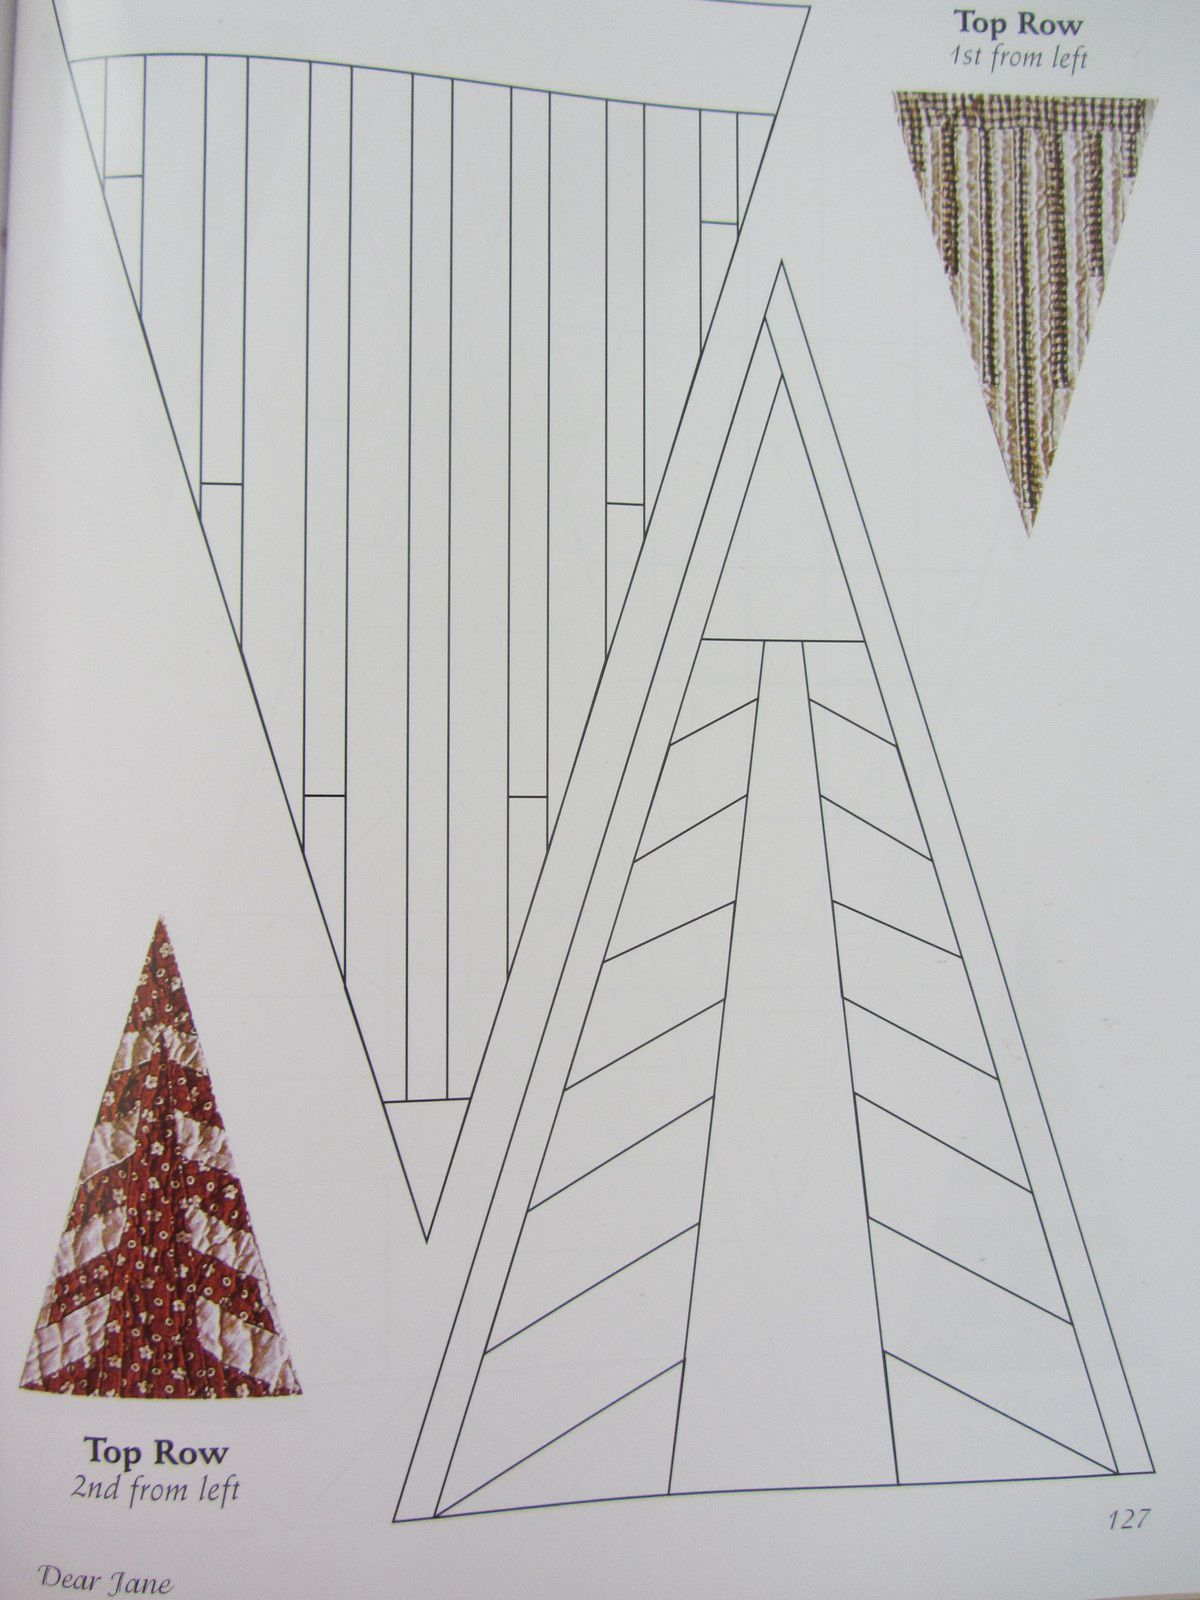 Dear-Jane triangles de bordure 1